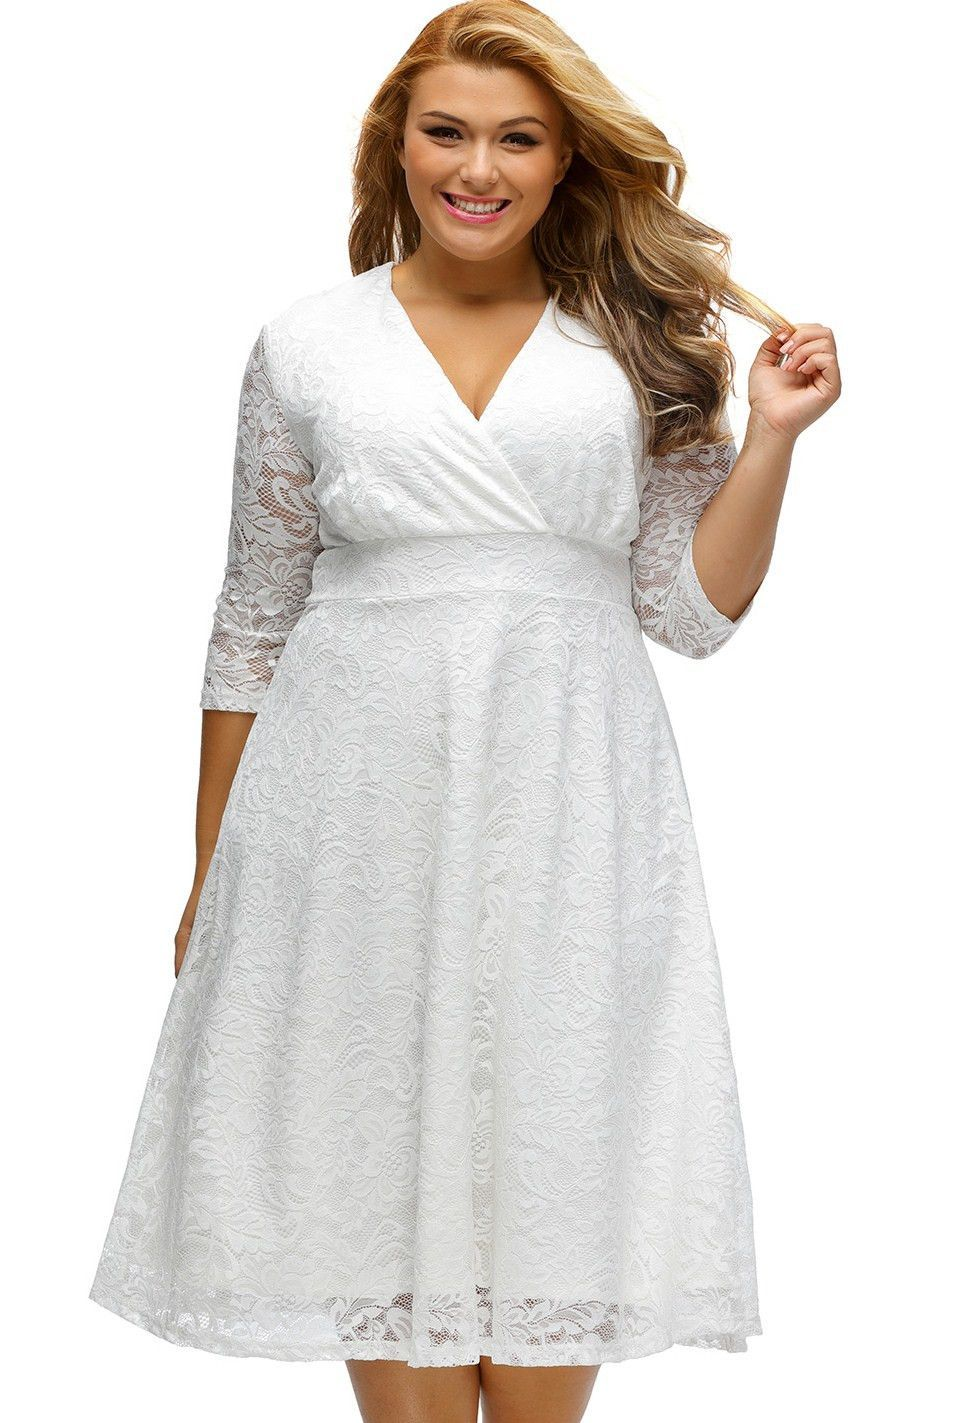 New White Surplice Lace Formal Plus Size Dress For Sale Modeshe Com Free Shipping On 60 Plus Size Homecoming Dresses Lace Formal Dress Lace White Dress